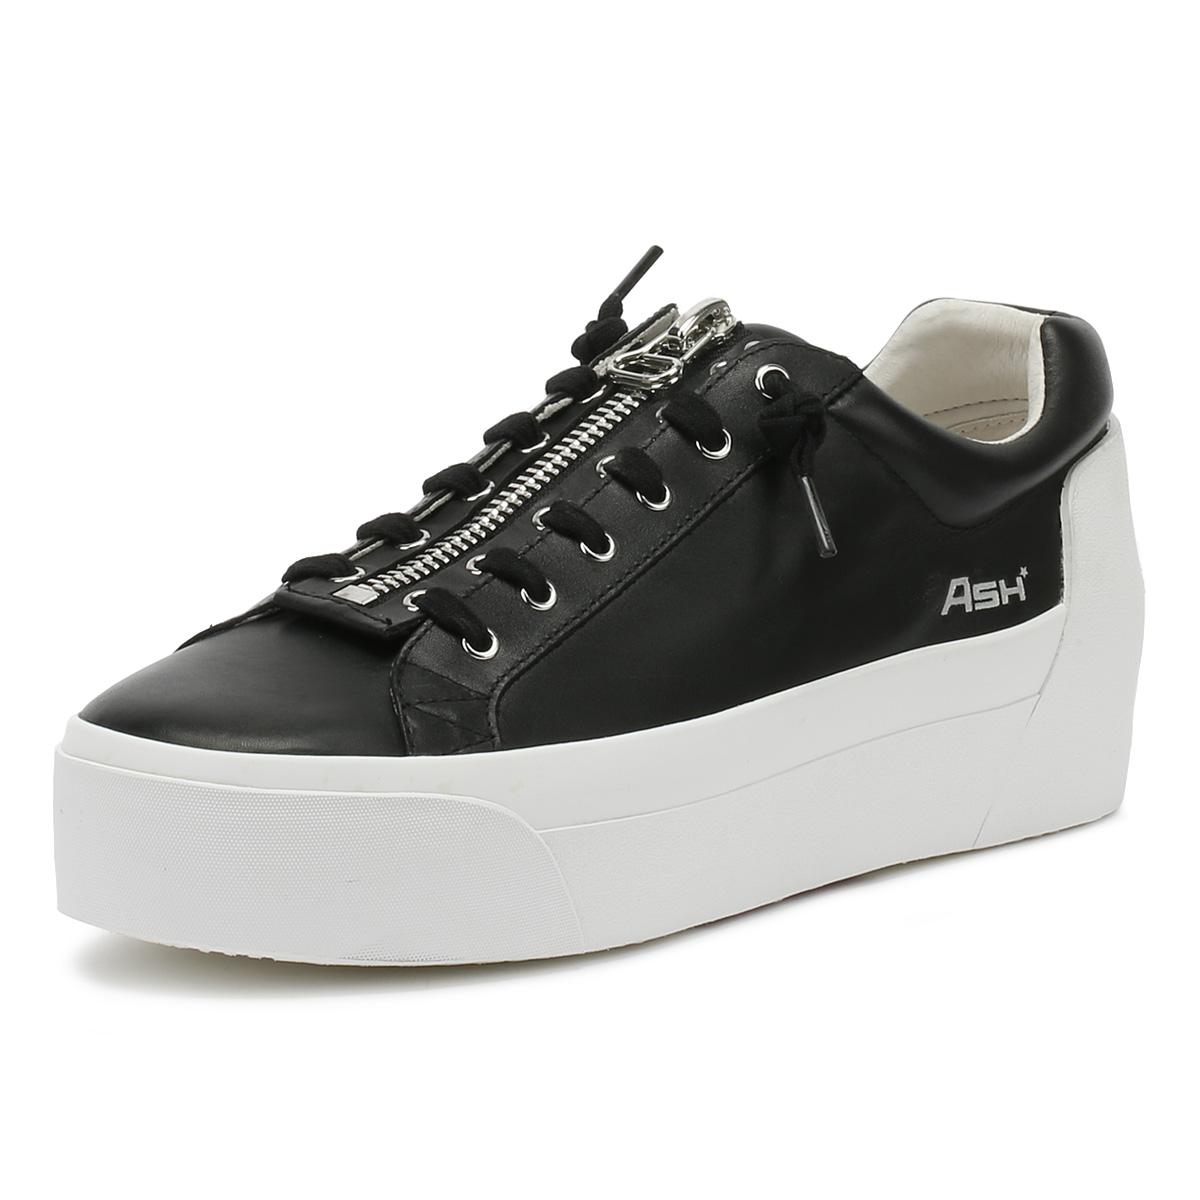 c3345b870b1 Ash - Black  buzz  Zip Leather Platform Sneakers - Lyst. View fullscreen